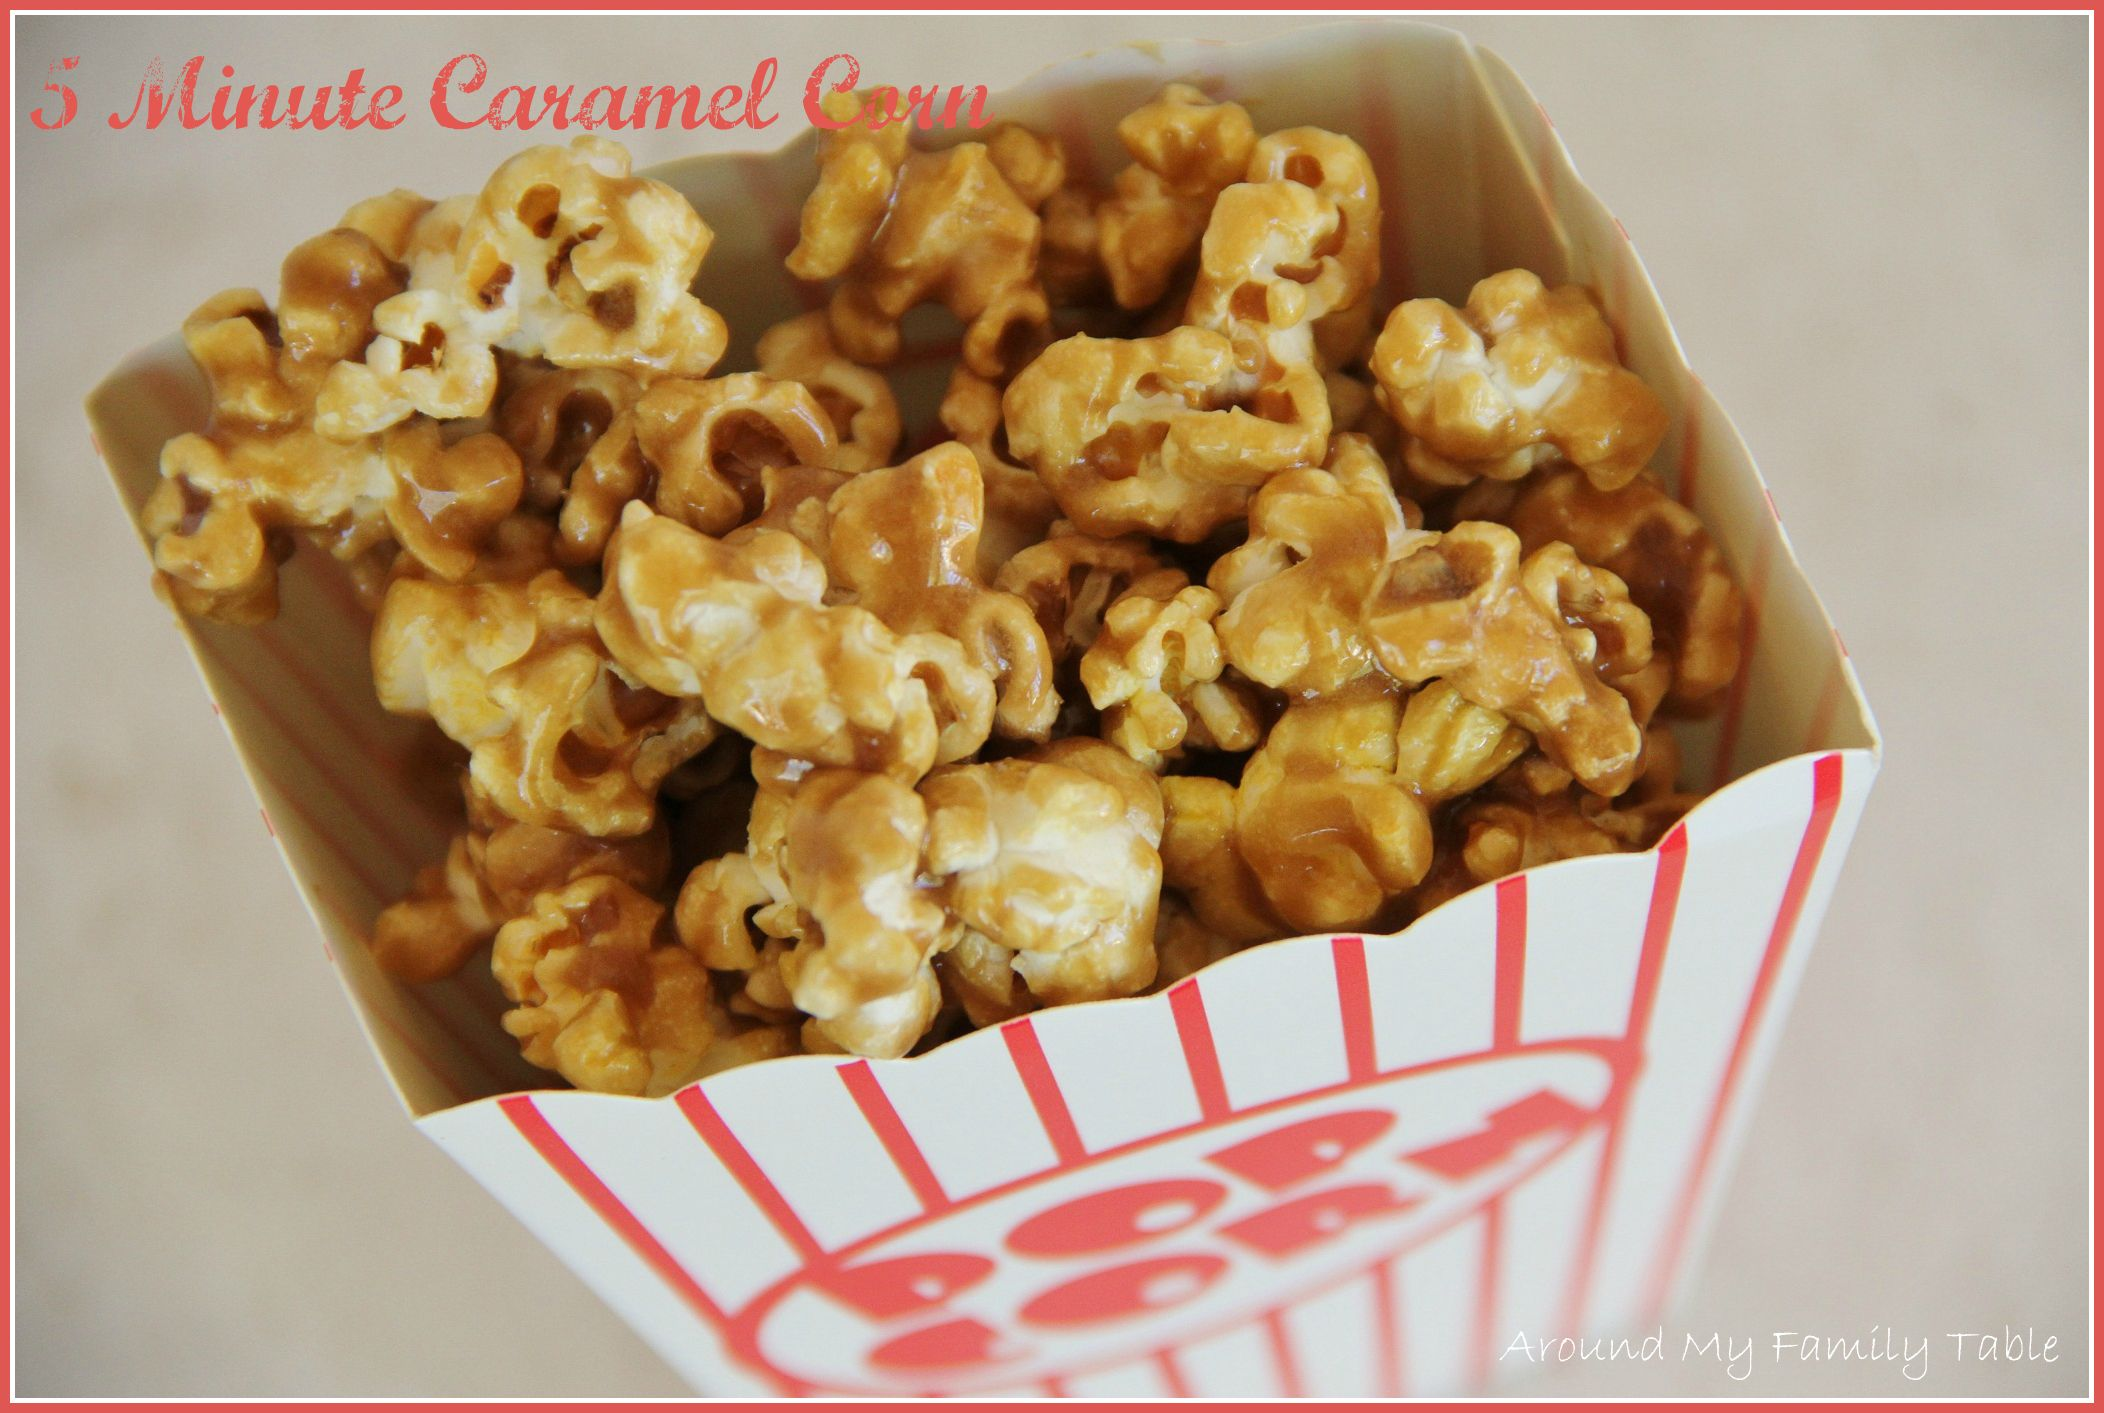 5 Minute Caramel Corn Recipe Caramel Corn Popcorn Recipes Caramel Popcorn Recipes